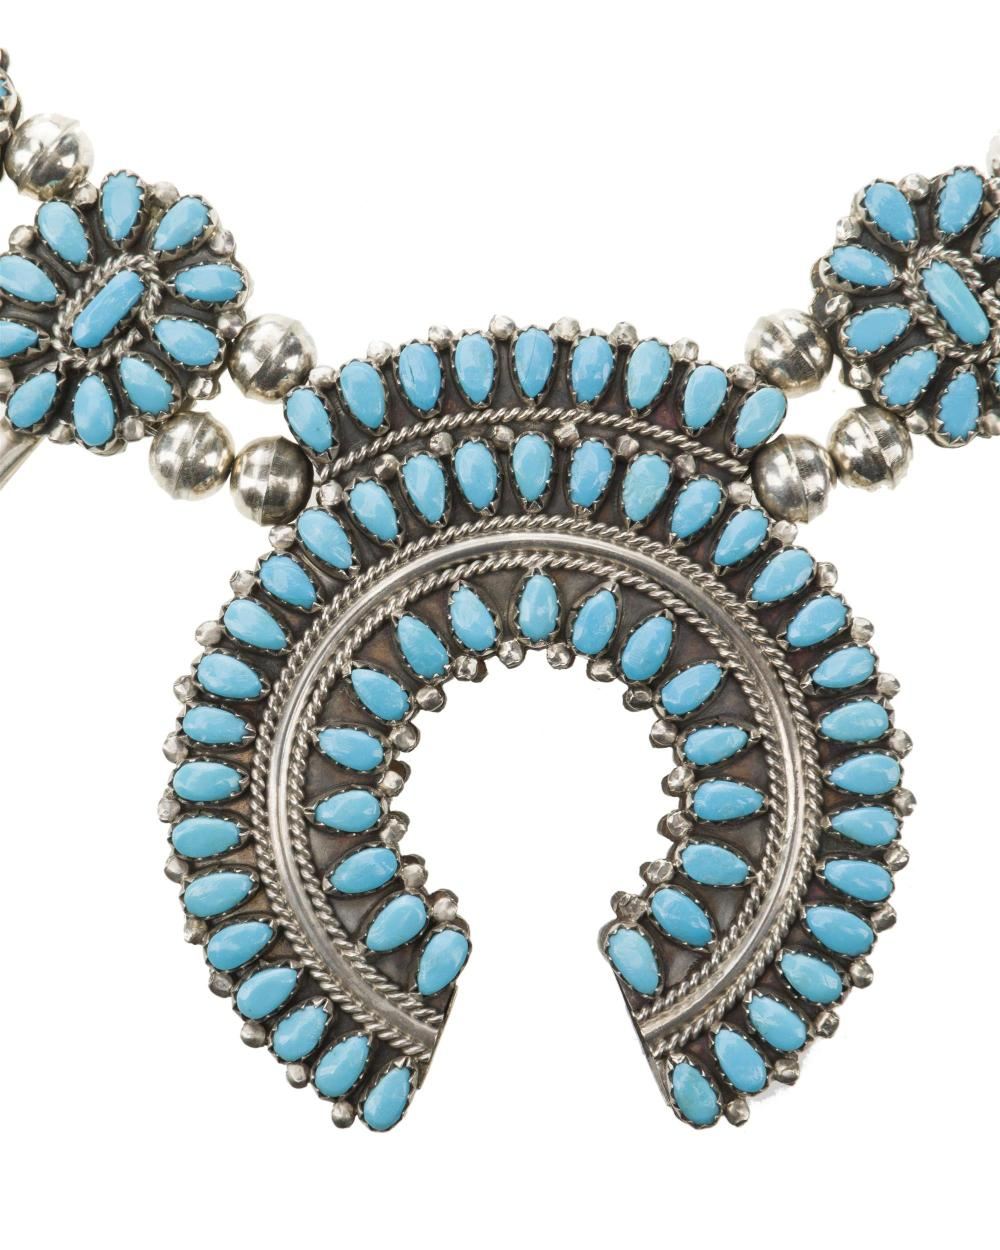 A group of American Indian silver jewelry